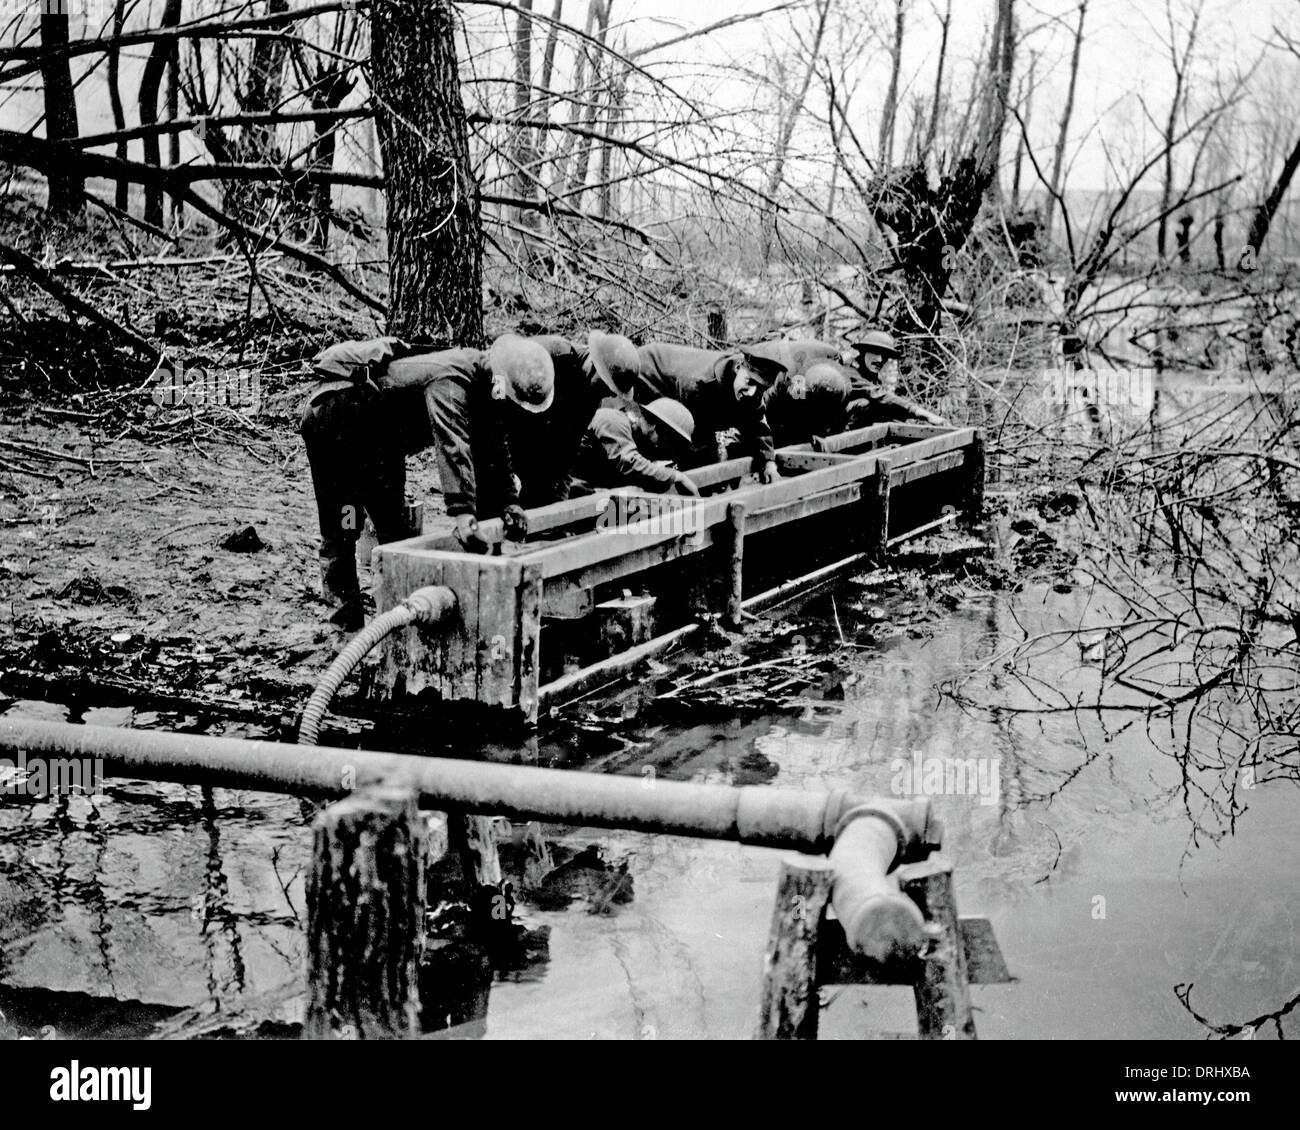 British soldiers filling water cans, Western Front, WW1 - Stock Image